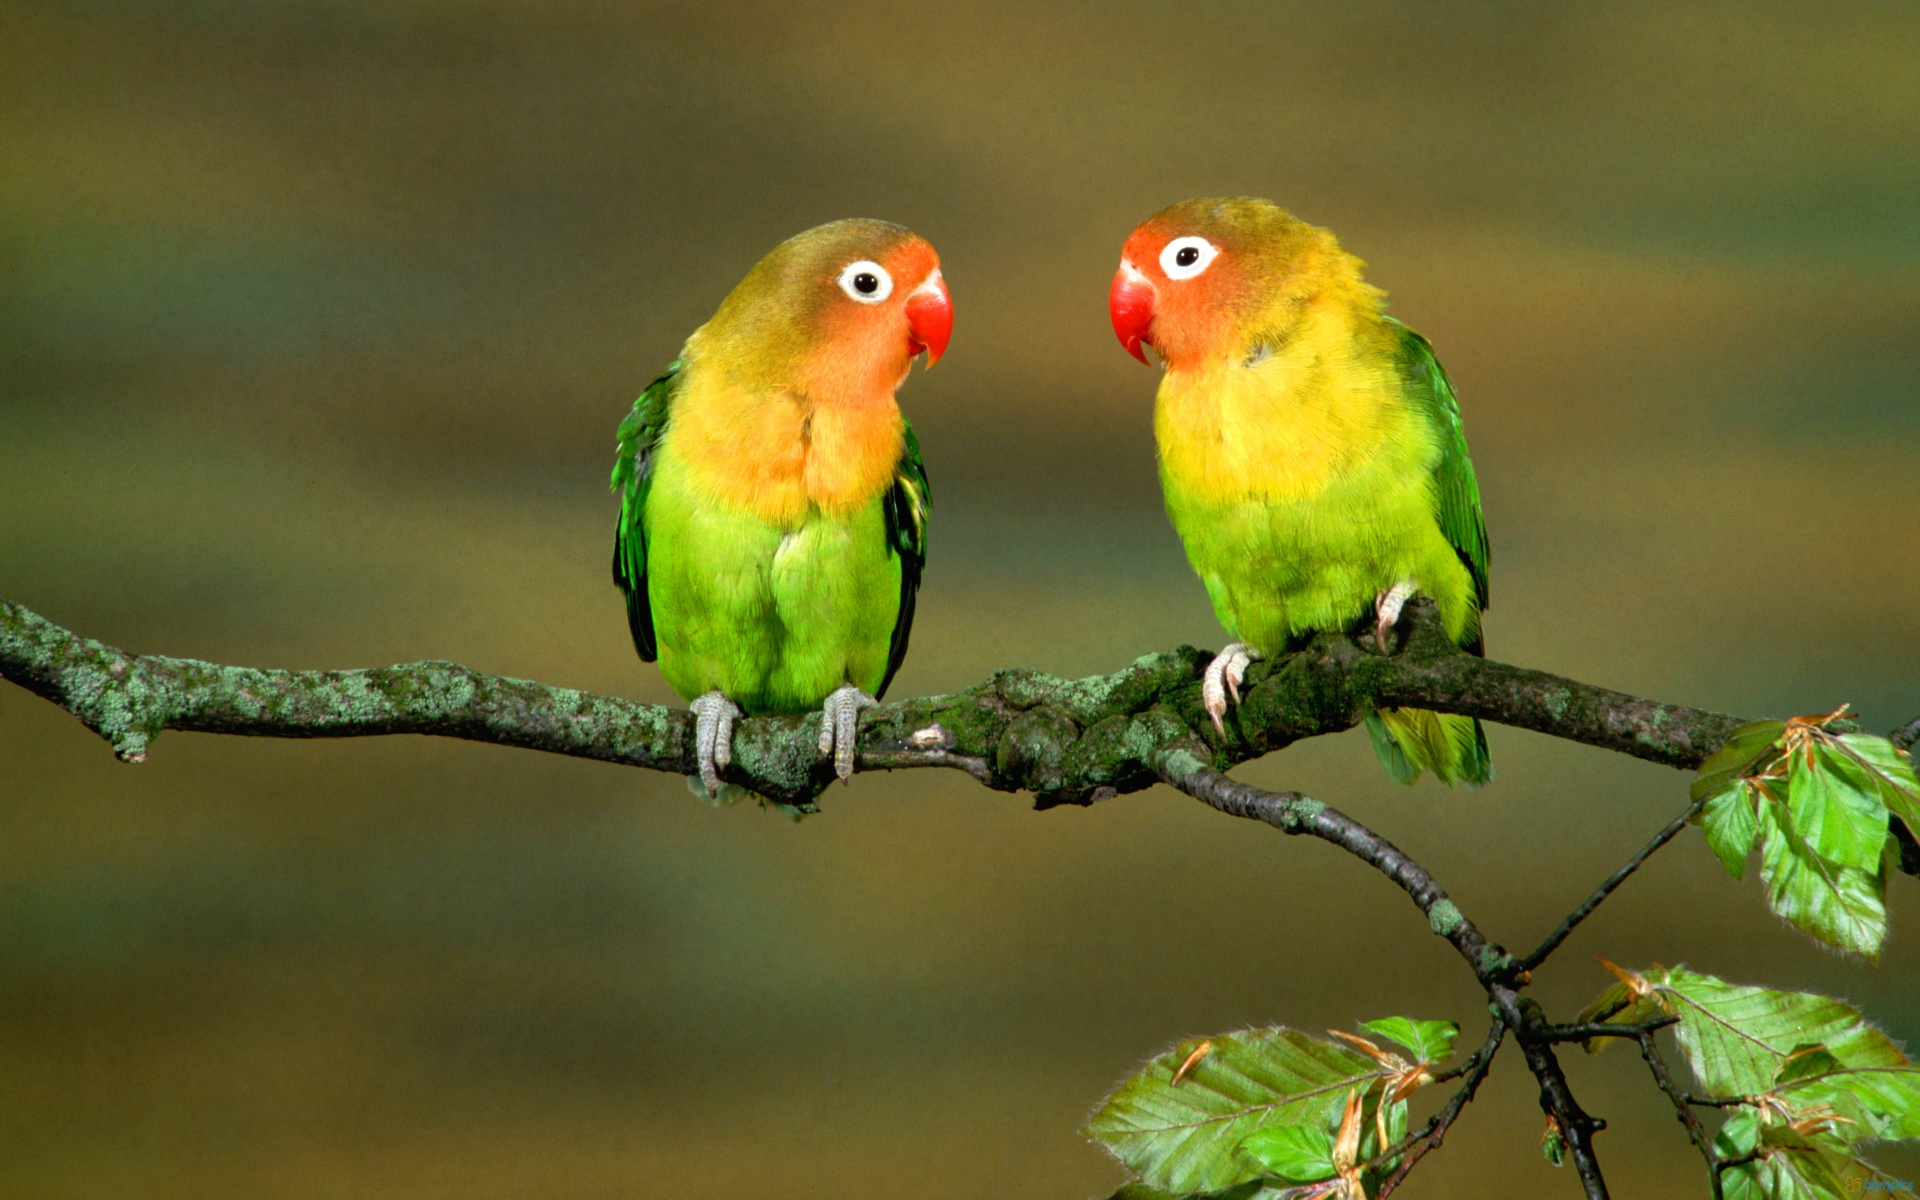 Two Colourful Parrots On A Branch Of Tree